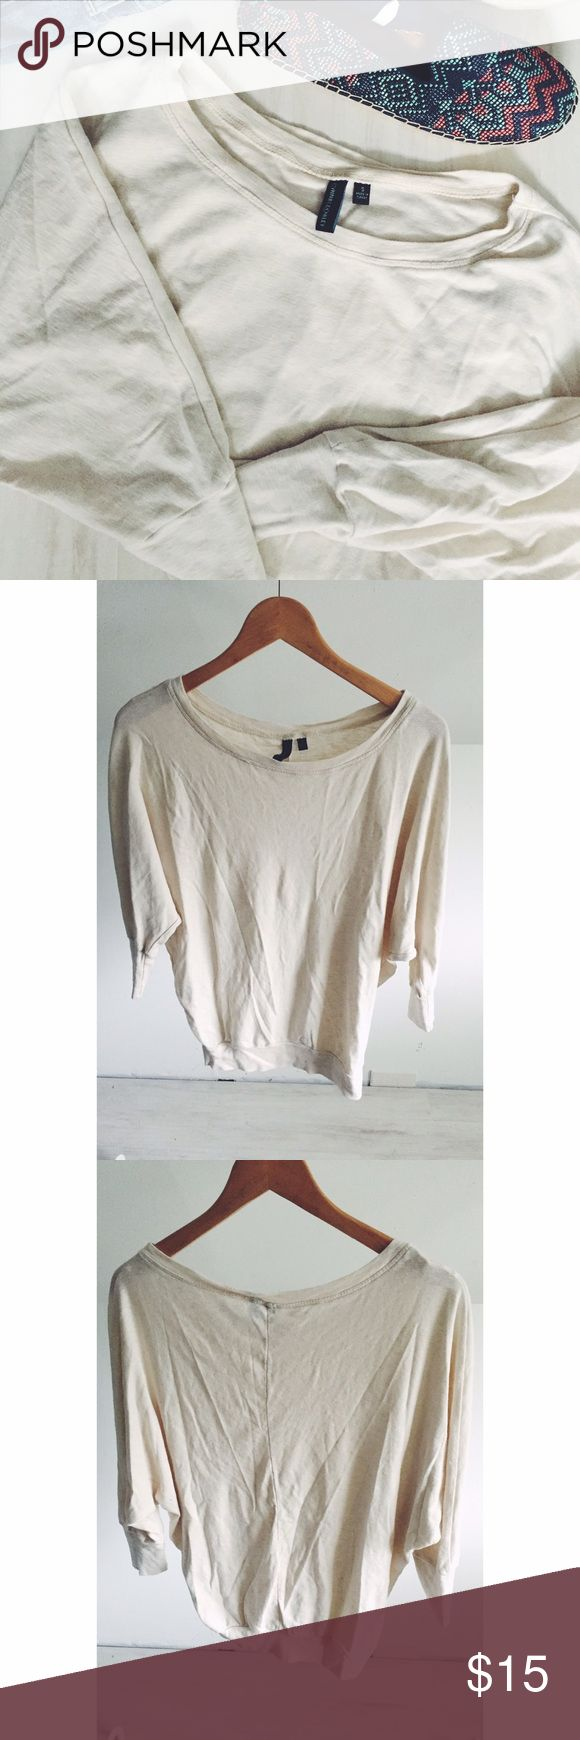 Cynthia Rowley Cream Batwing Shirt The perfect basic for your new year wardrobe! A beautiful stitch line down the back is very flattering and the slouchy, batwing style makes this easy to wear alone or layer! Gently used. Great condition. Cynthia Rowley Tops Tees - Long Sleeve